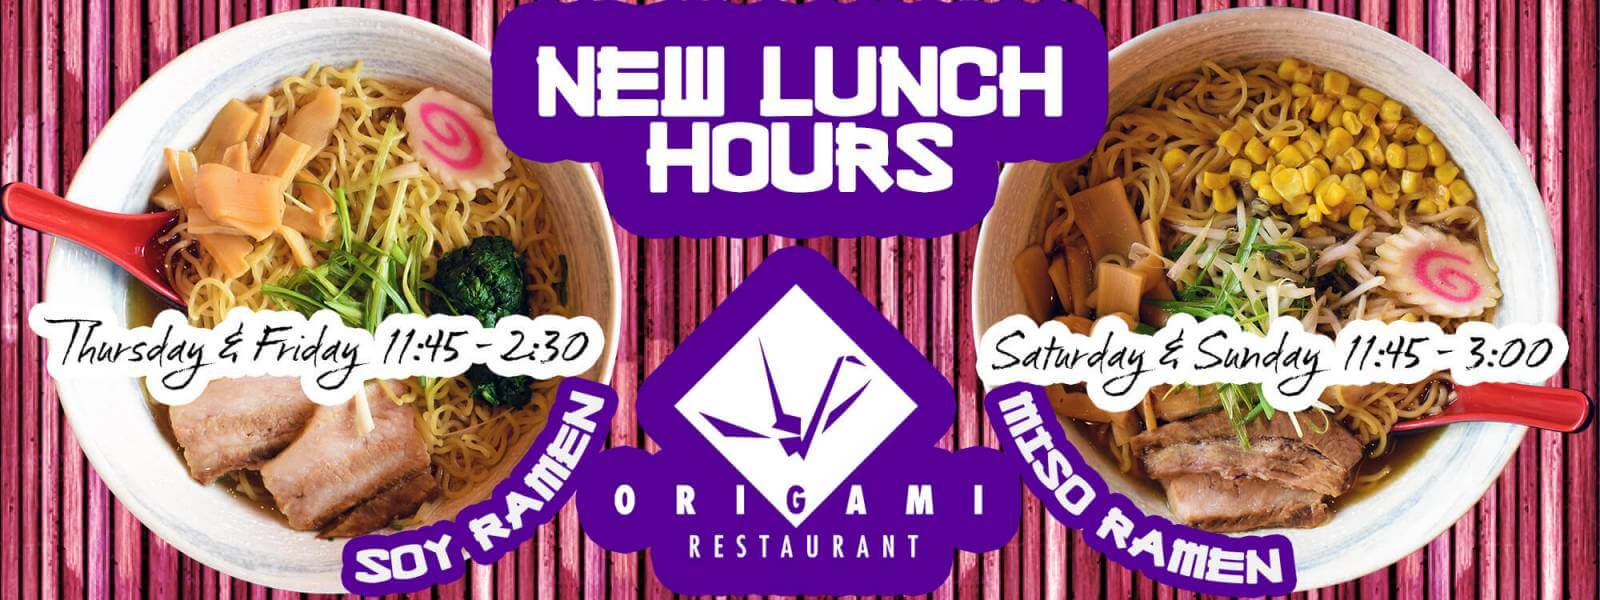 New Lunch Hours At Origami